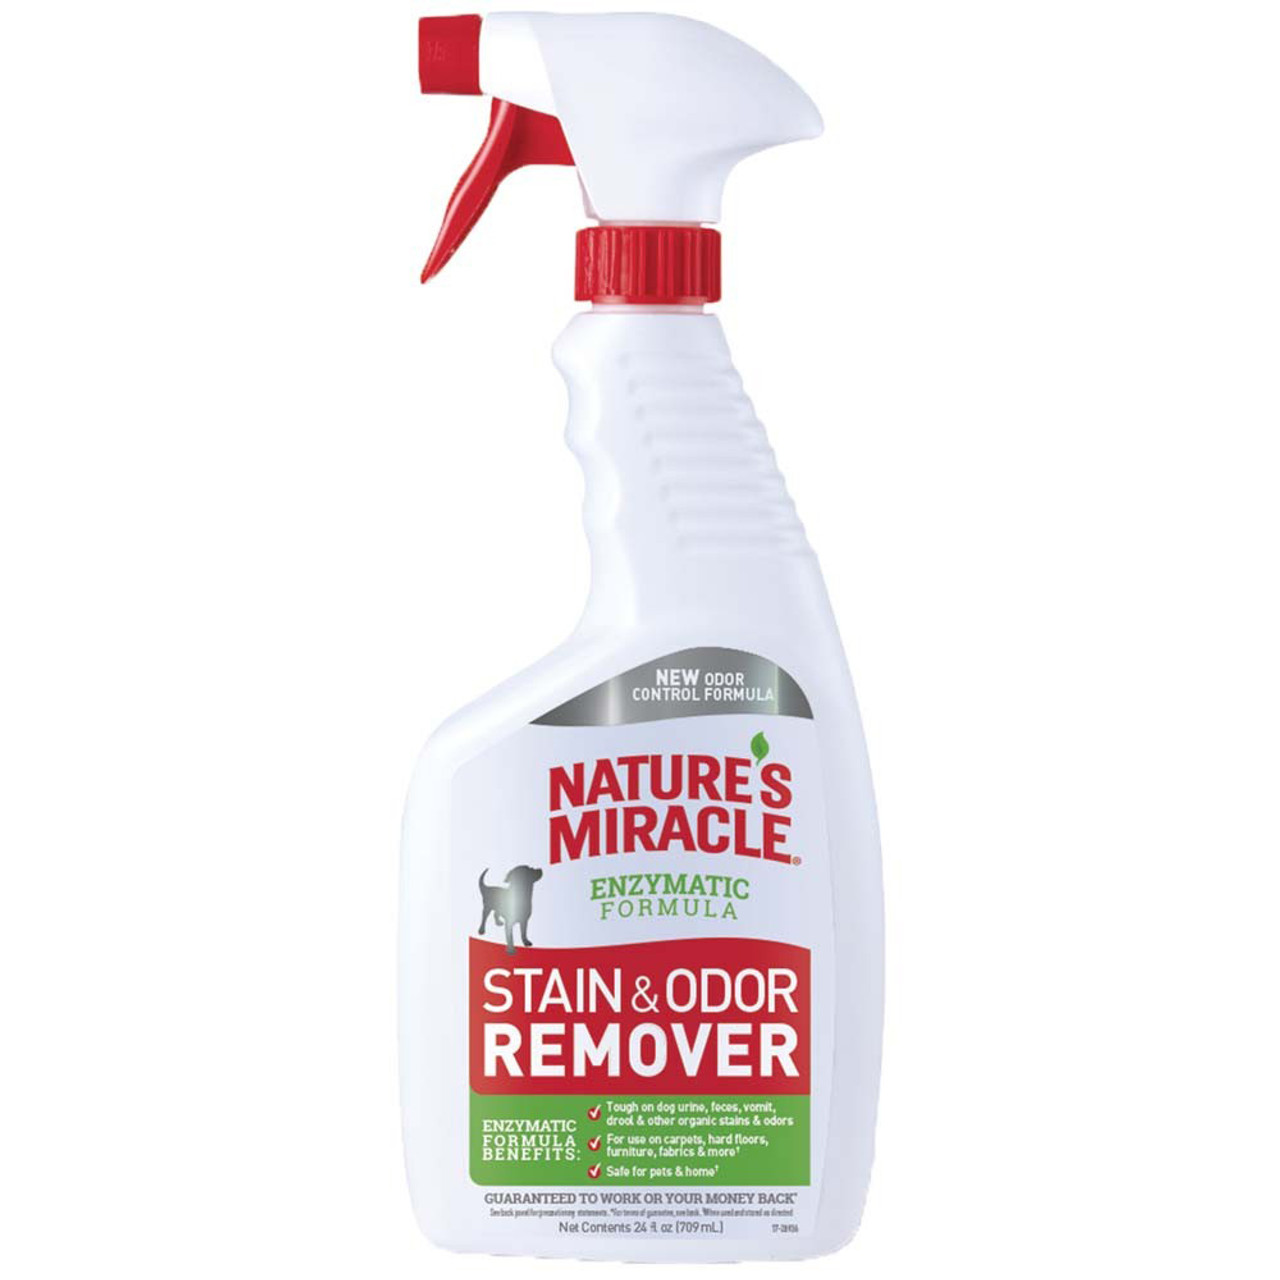 Nature's Miracle Enzymatic Formula Stain & Odor Remover for Dogs